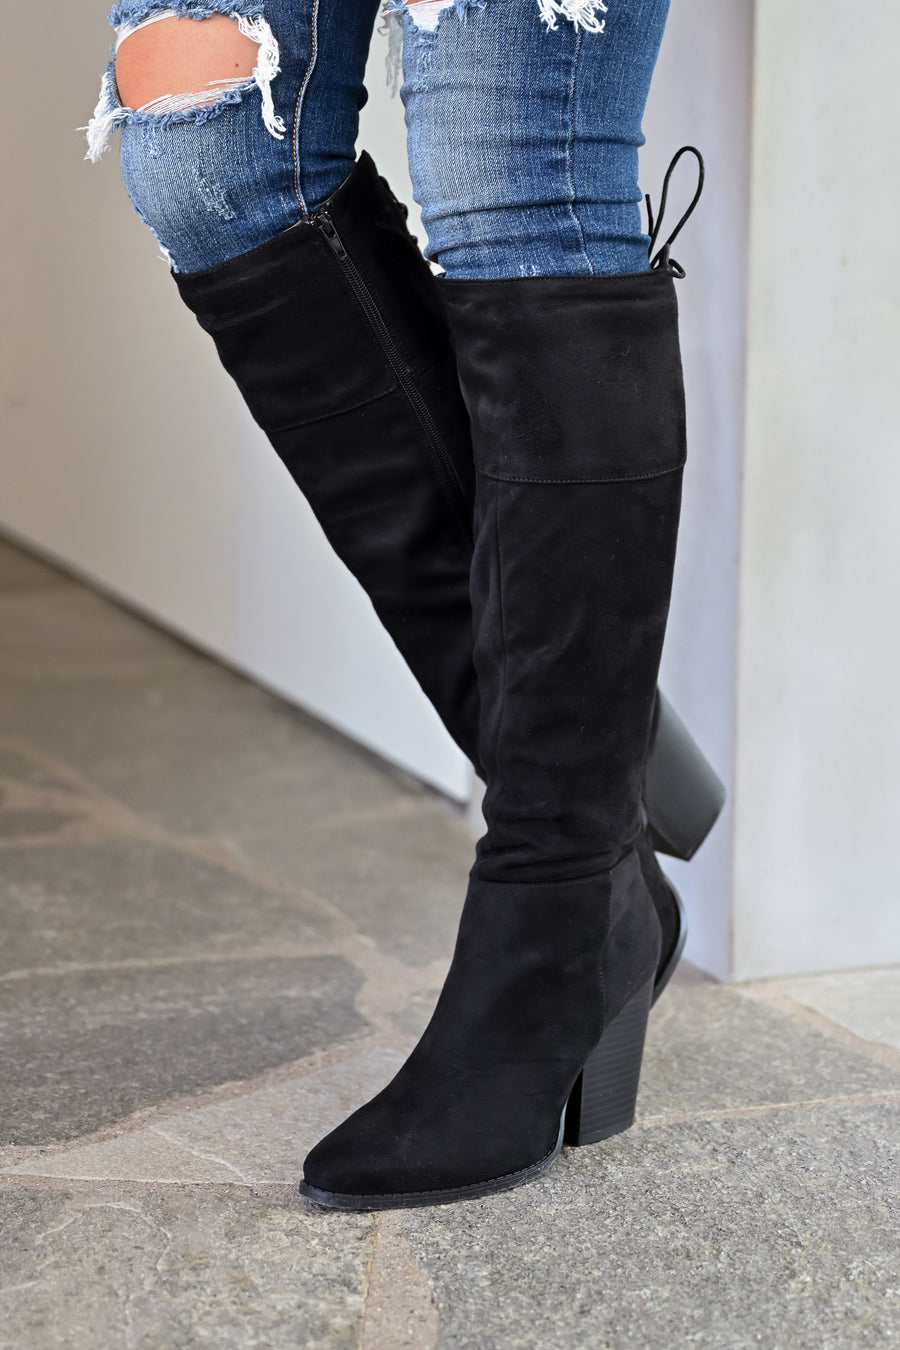 Karina Knee High Boots - Black womens trendy tall suede partial lace up boot closet candy side